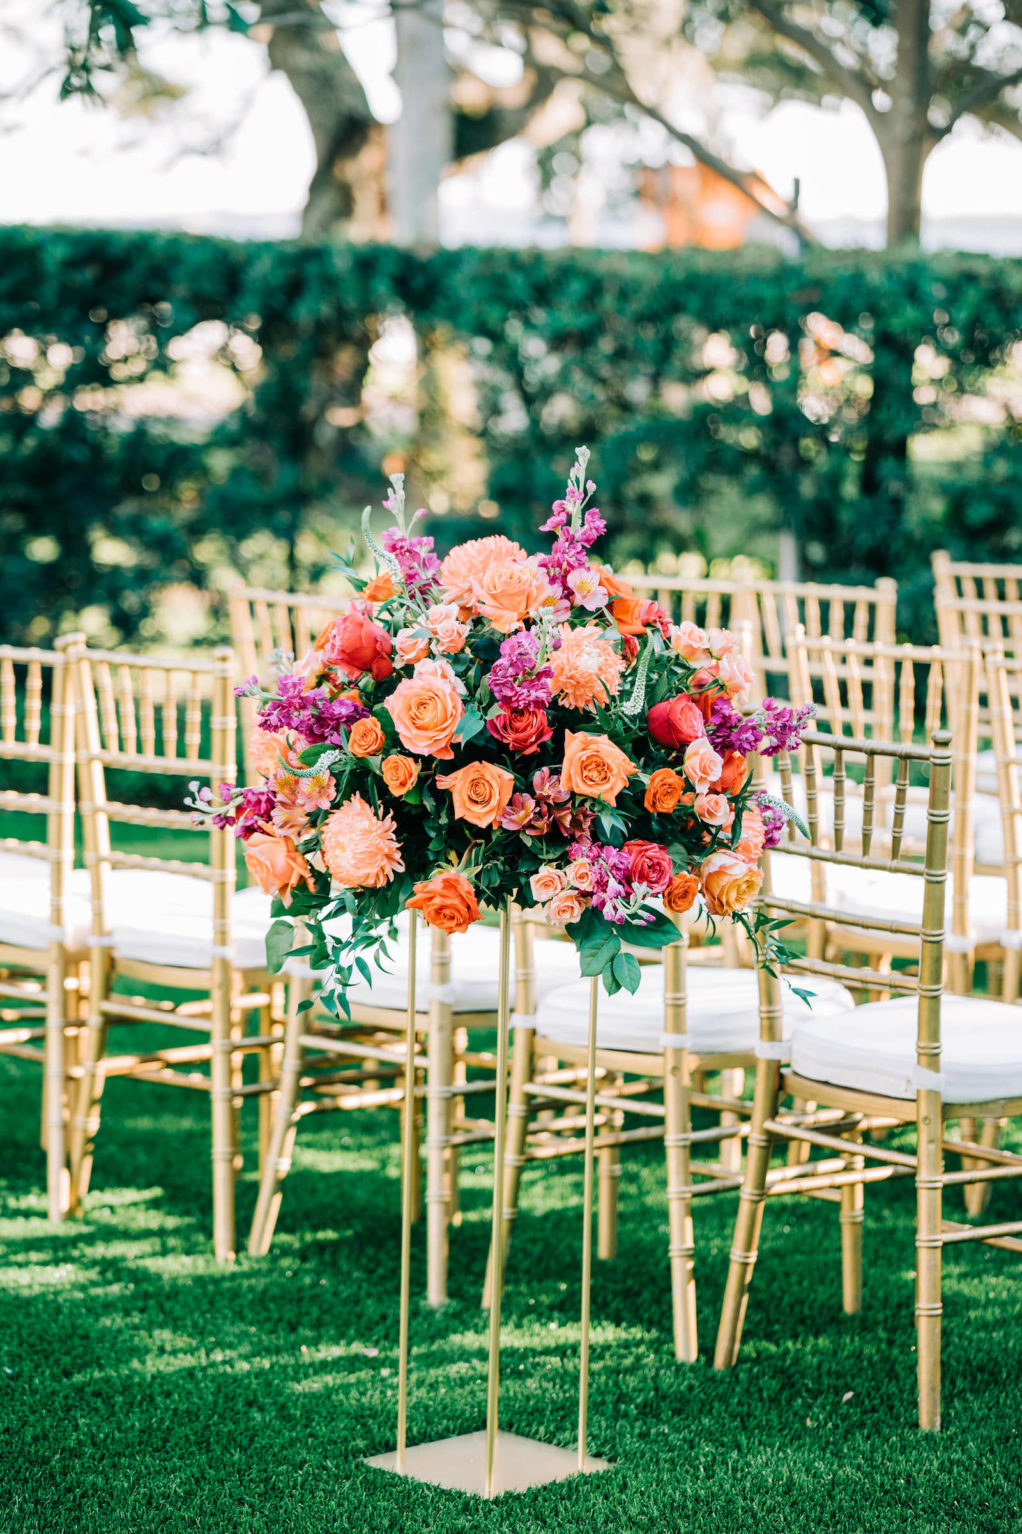 Outdoor Garden Wedding Ceremony Decor, Gold Chiavari Chairs, Gold Stands with Vibrant Colorful Purple, Pink, Orange Roses, Red and Greenery Lush Floral Arrangement   Wedding Venue Tampa Garden Club   Wedding Florist Monarch Events and Design   Wedding Rentals Kate Ryan Event Rentals